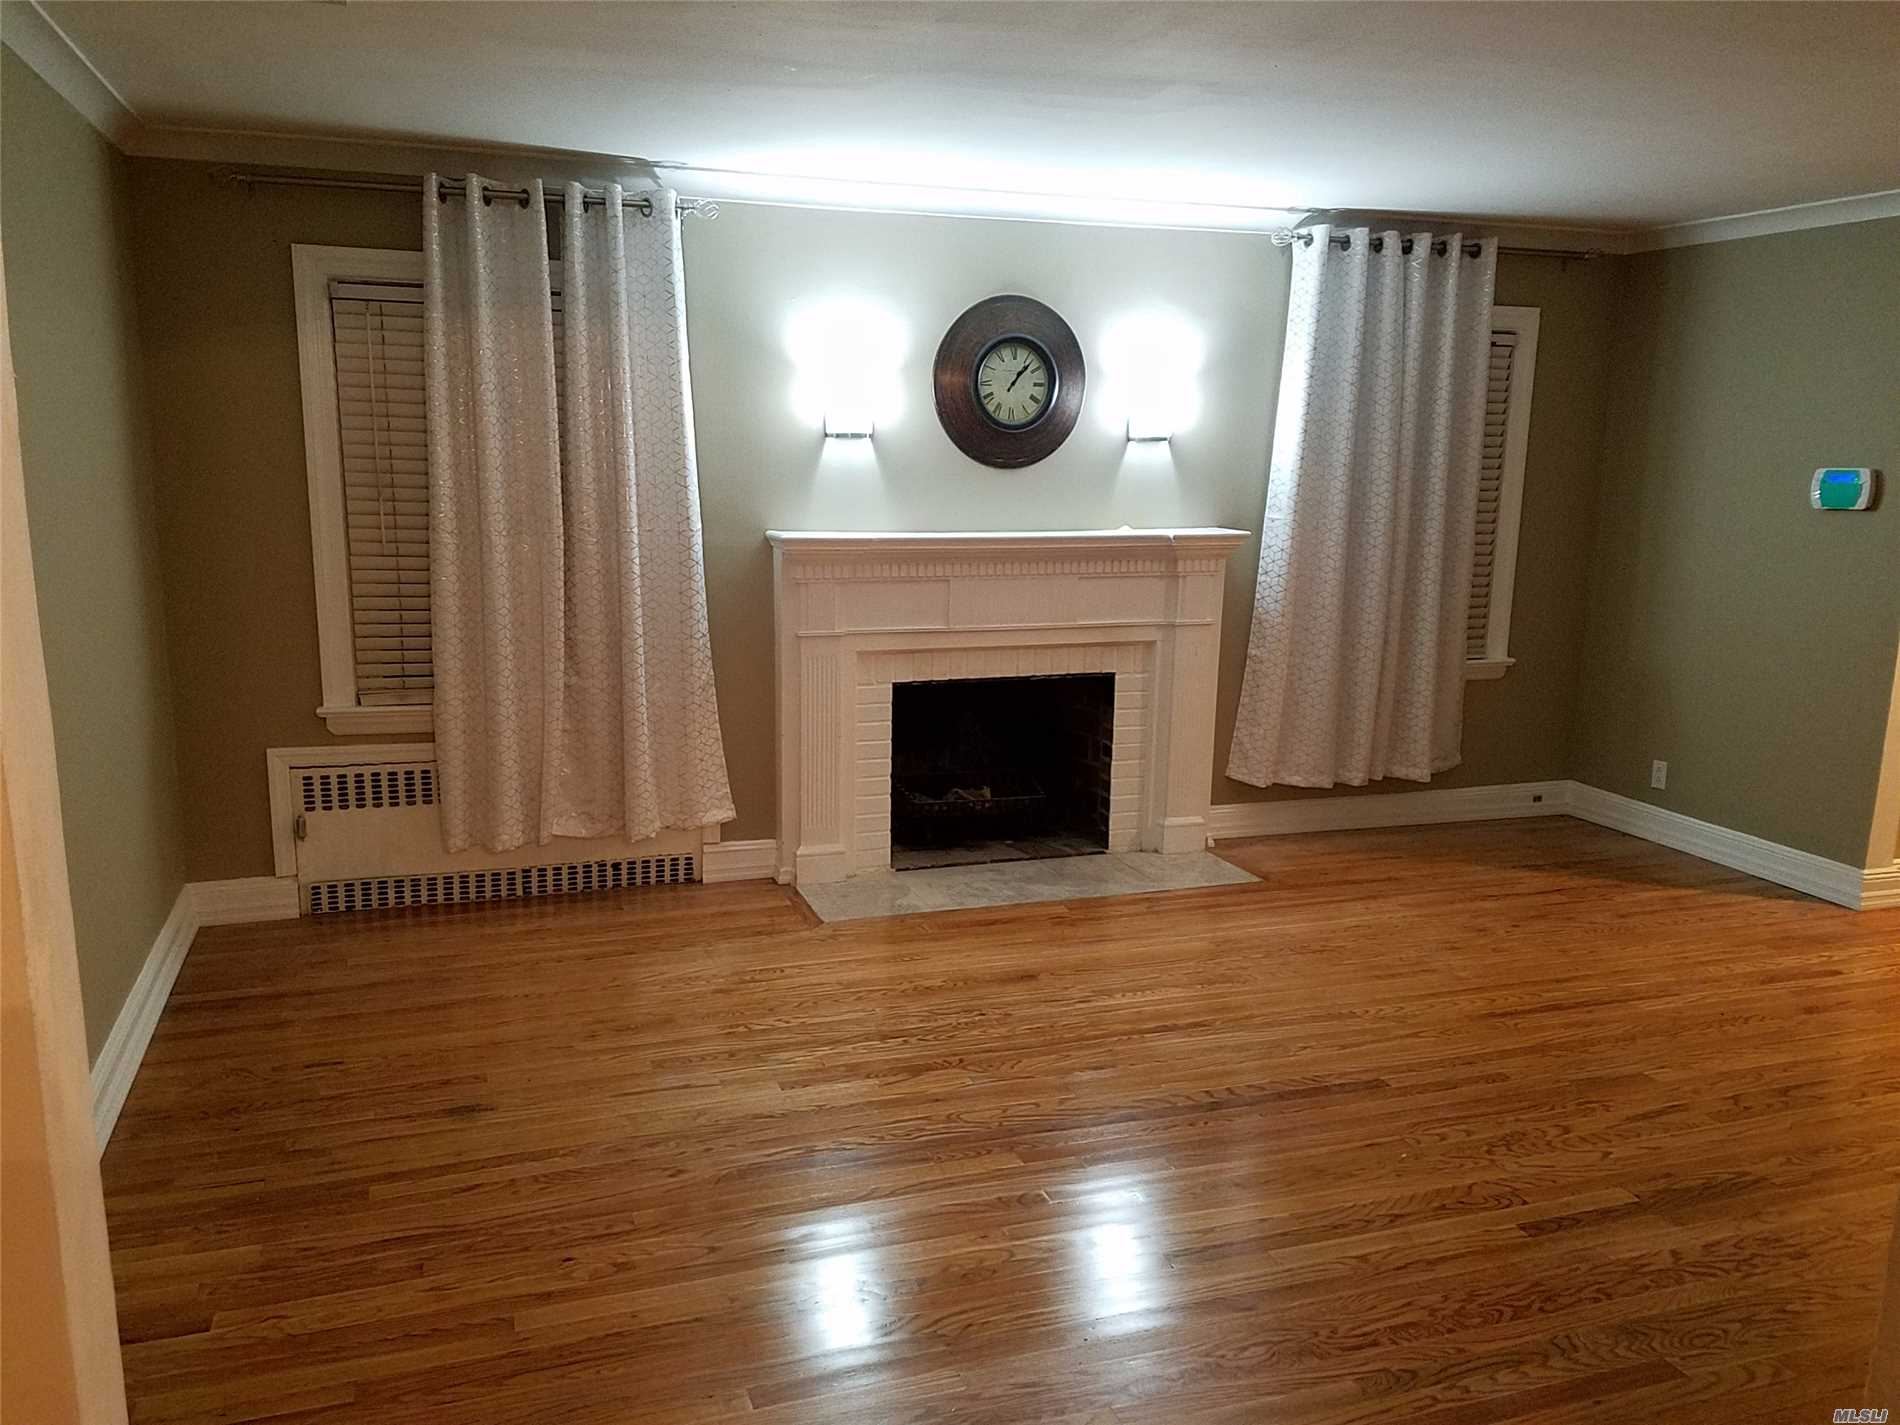 New Reno And Painted, Hardwood Floors Throughout With Nice Cozy Wood Burning Fireplace, Parklike Grounds.